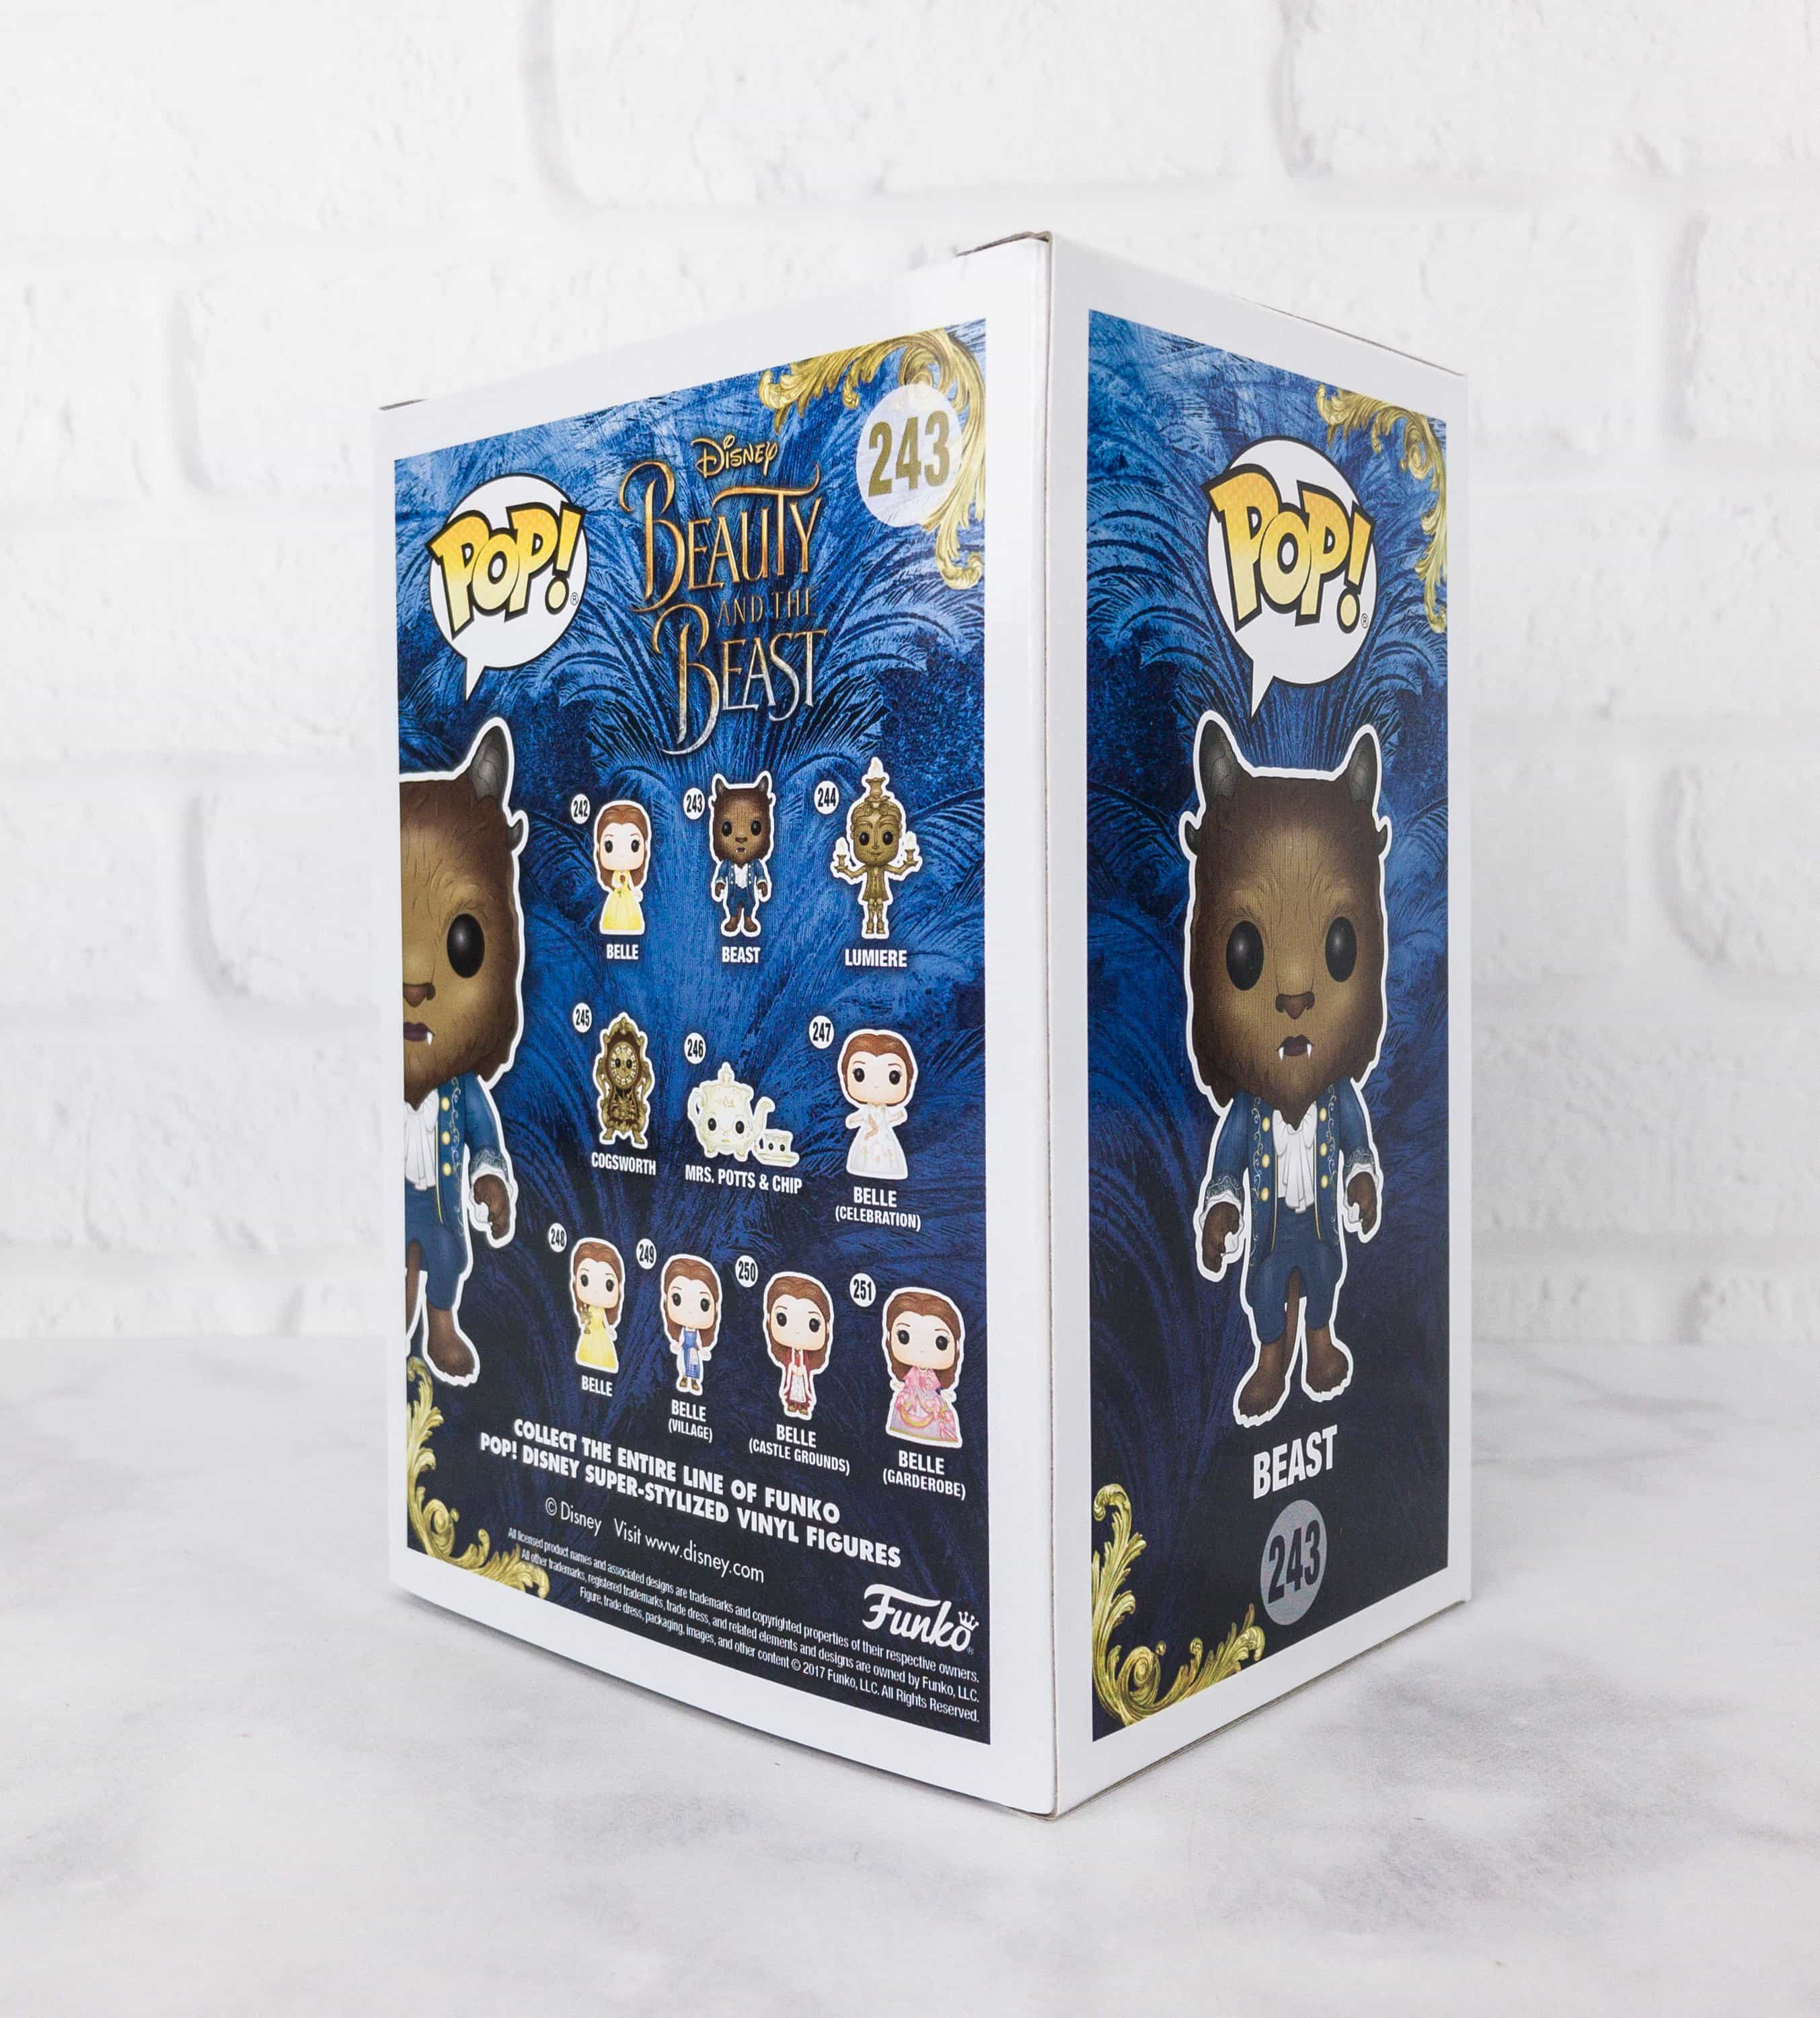 The back of the box features other pops from the movie. Just give them a thumbs up if you want another one.